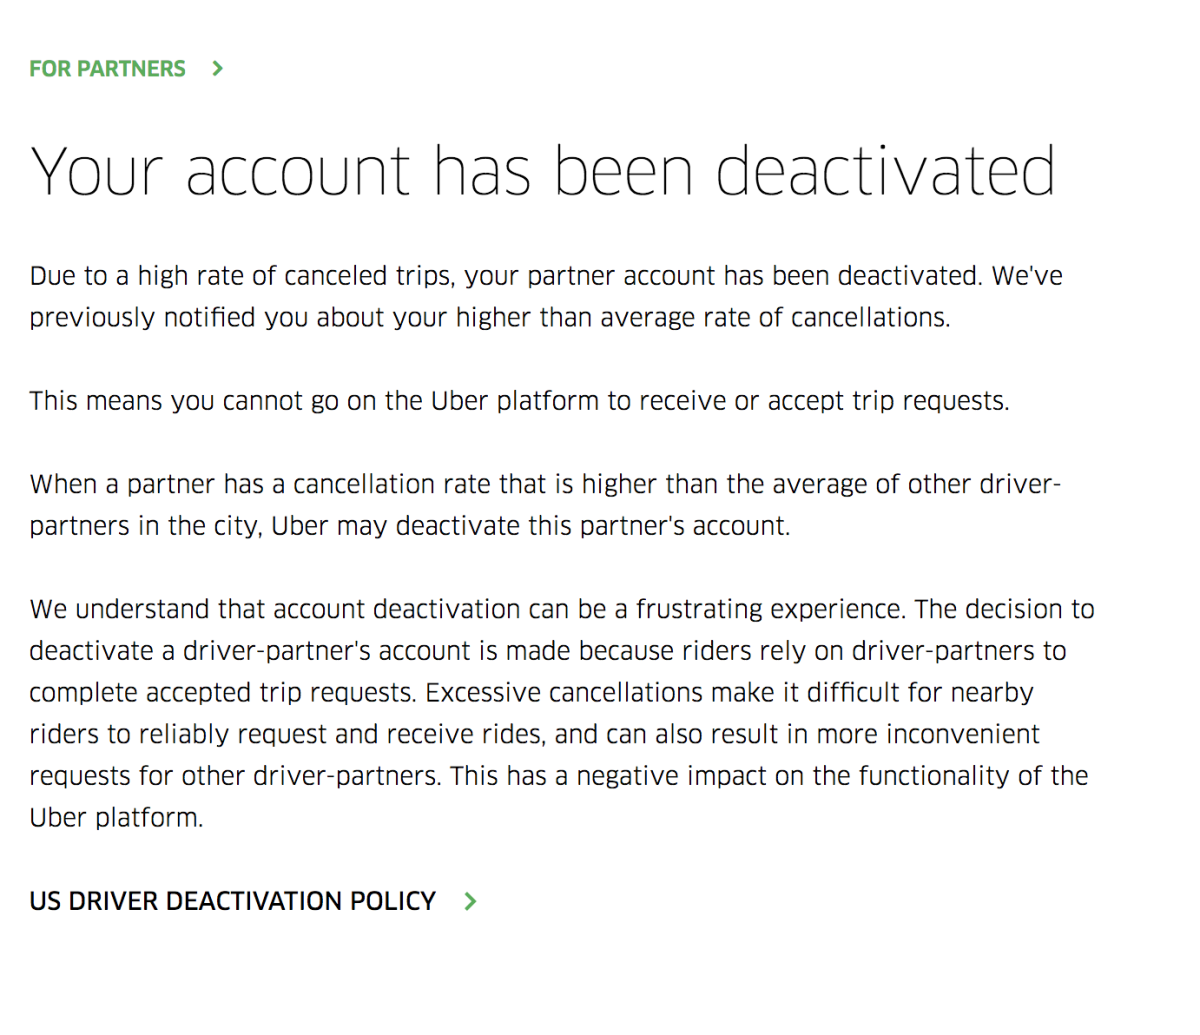 my-ridesharing-experience-and-how-lyft-fired-me-due-to-false-accusations